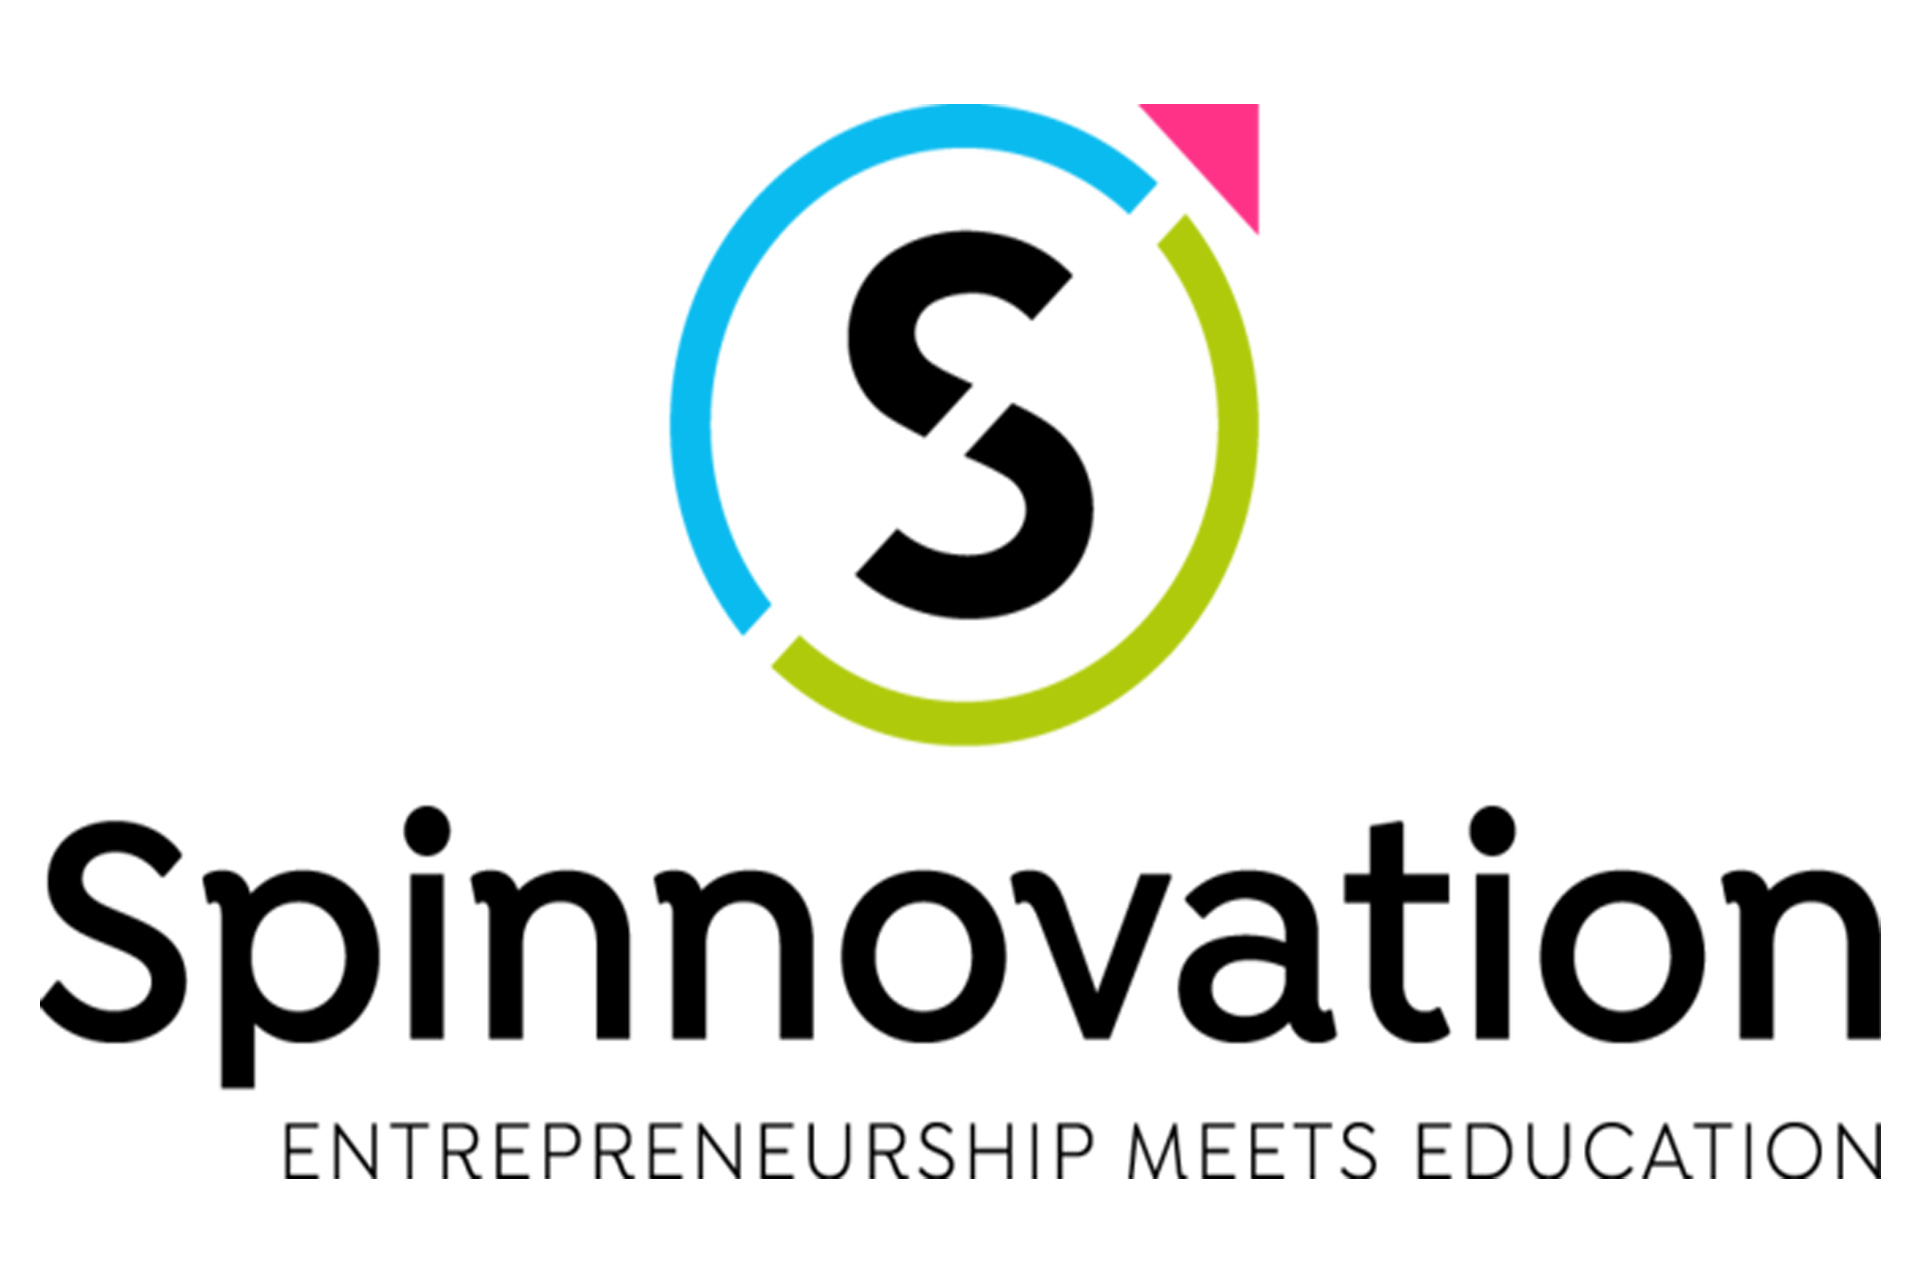 Spinnovation